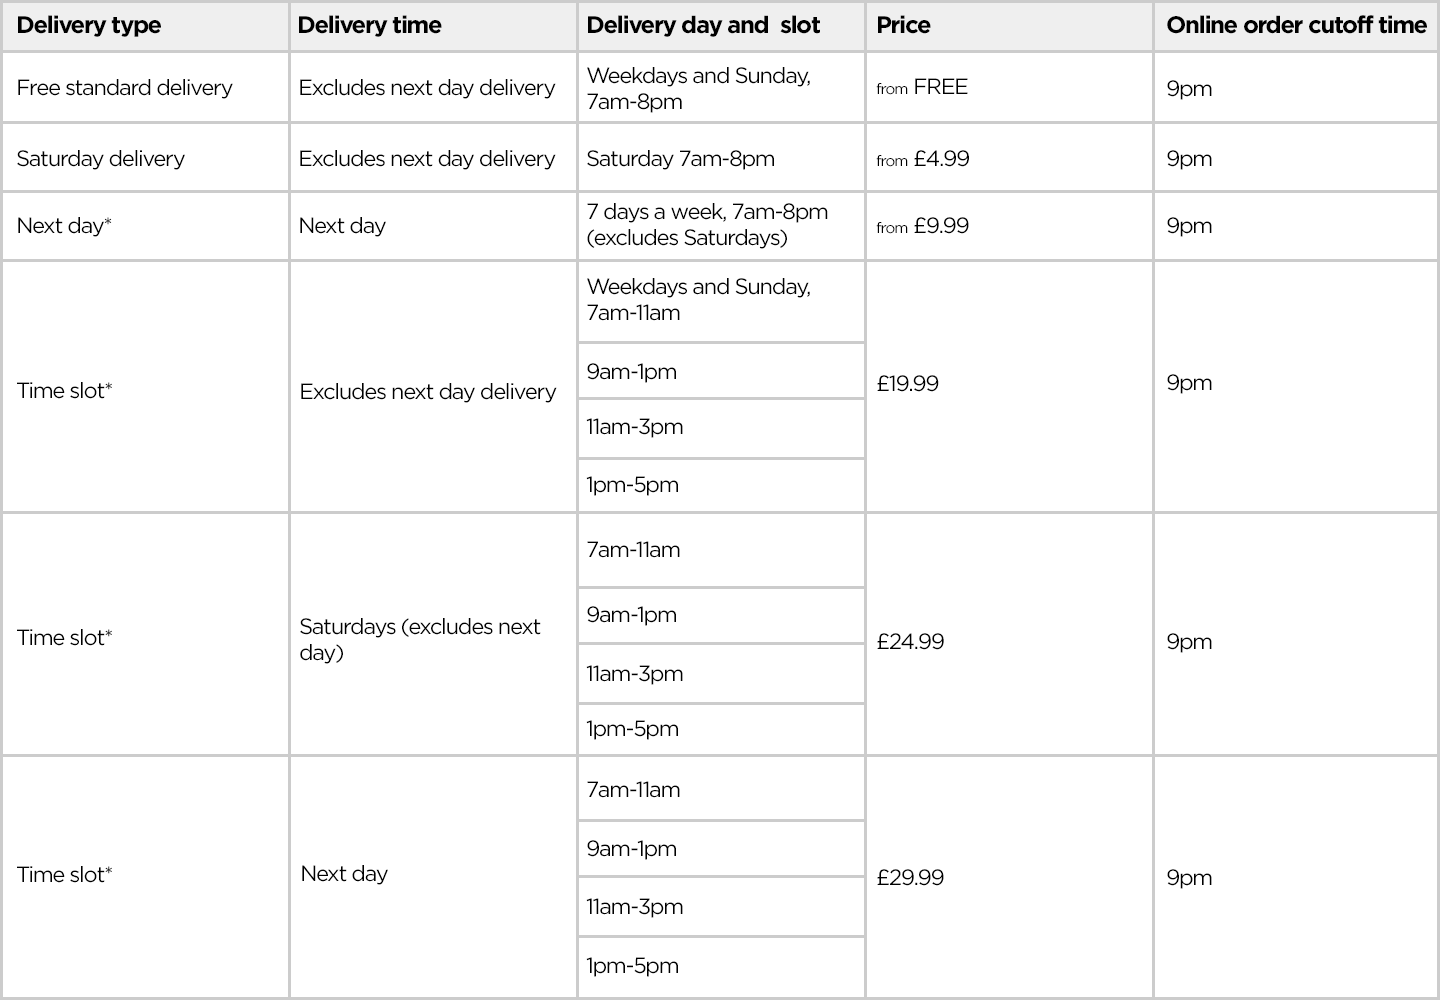 Uncategorized Currys Kitchen Appliances get it delivered from same day and free currys you can only book next delivery time slot for selected large items subject to address please check individual